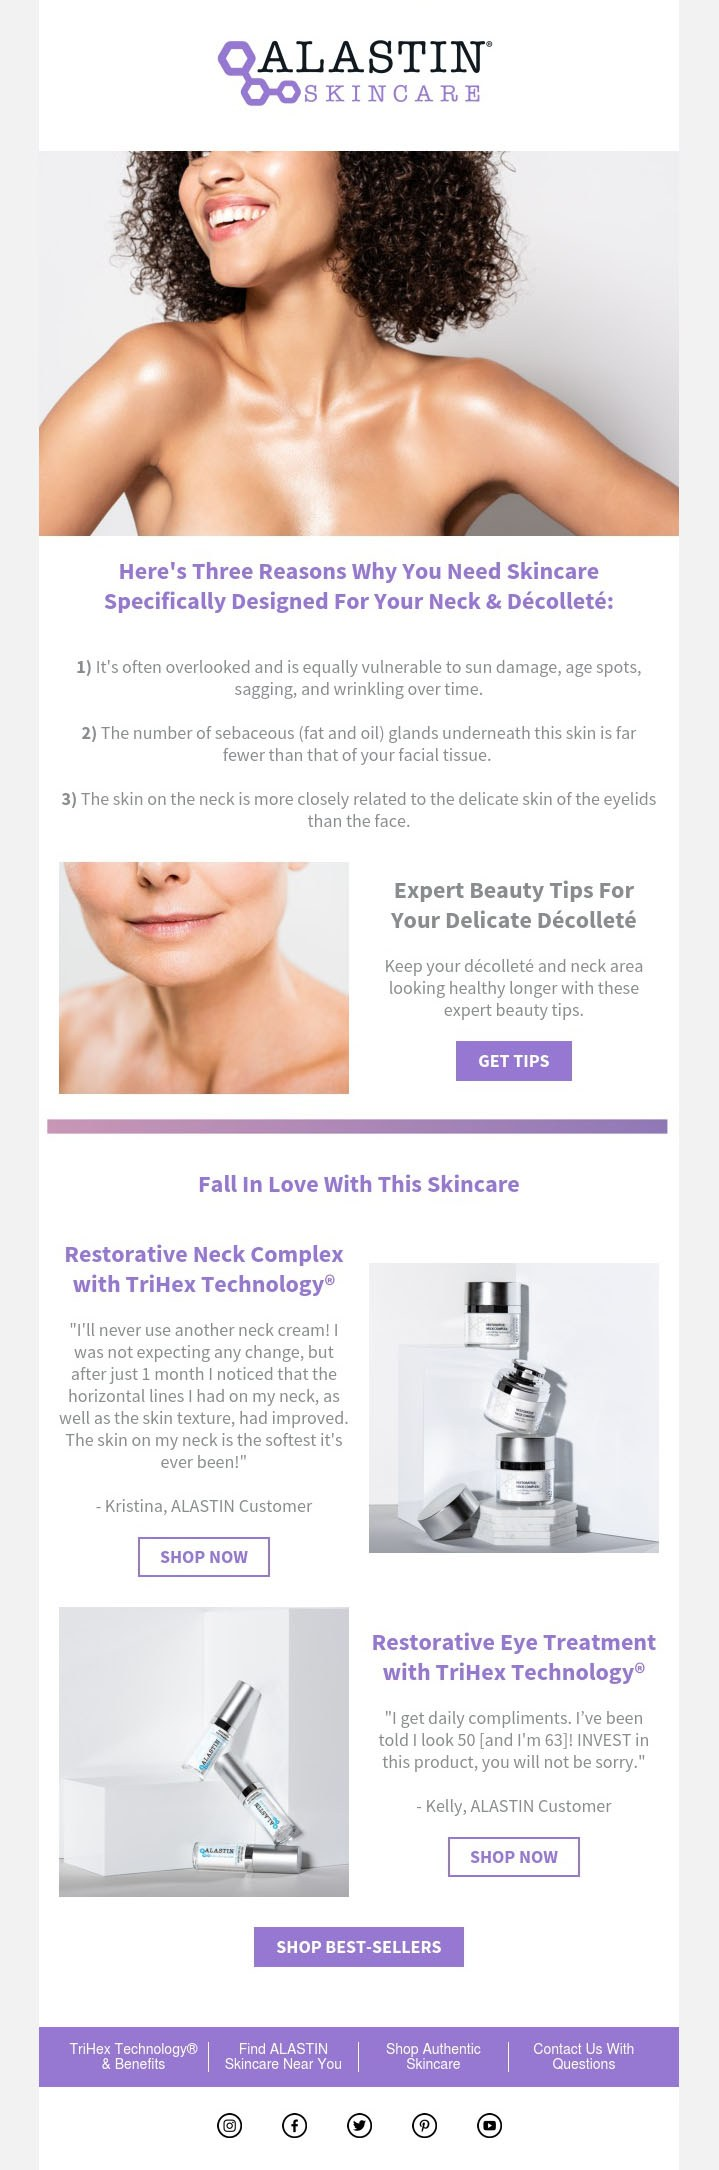 alastin-skin-care-newsletter-holiday-tips